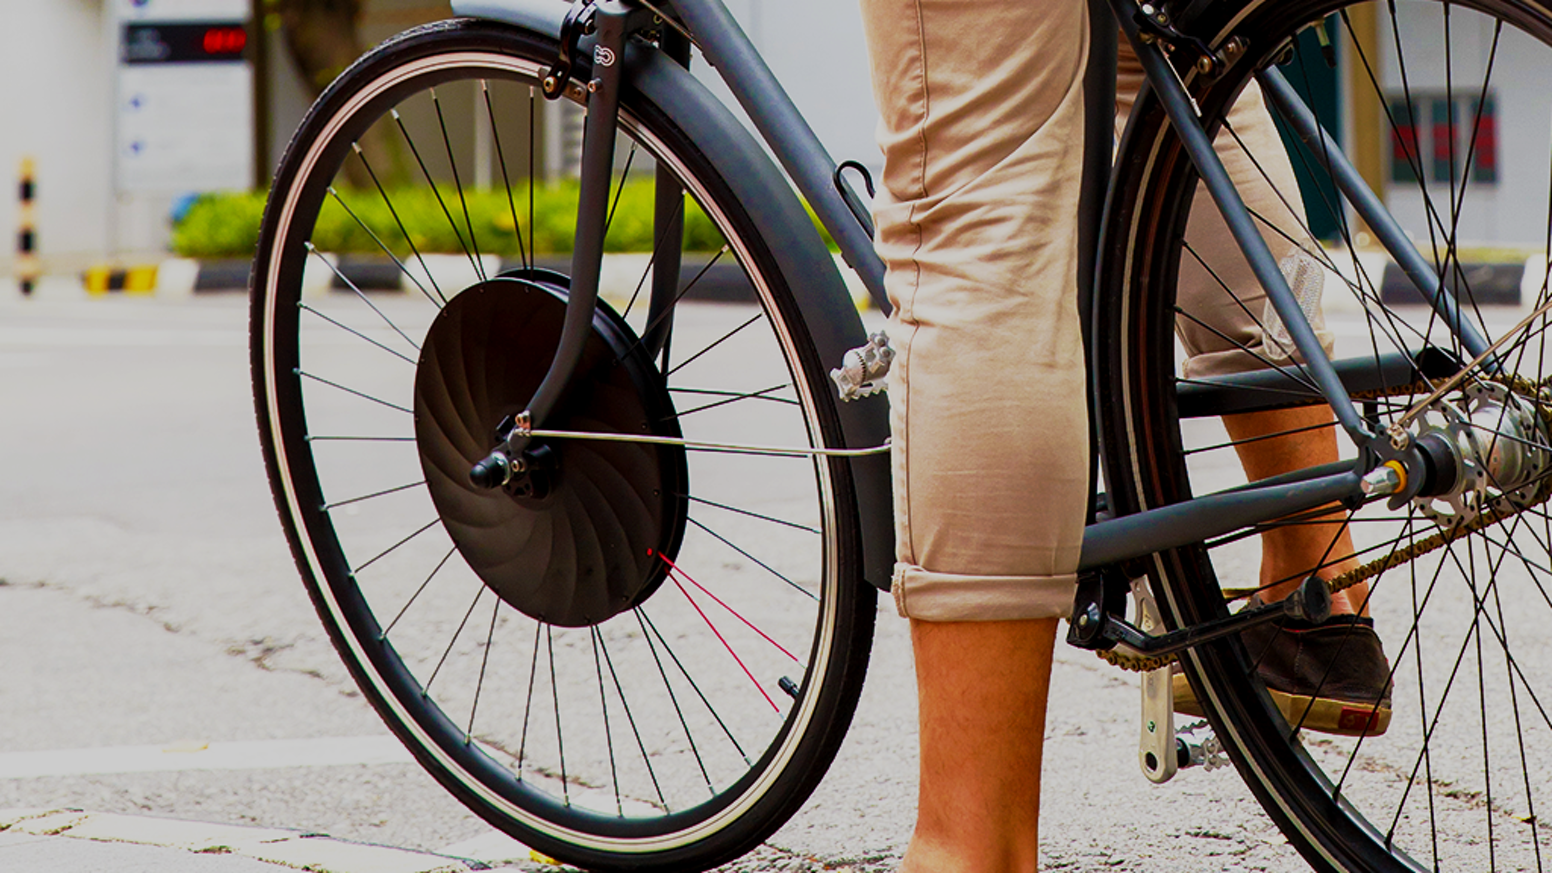 Simply replace your front bike wheel with the UrbaNext Electric E-Bike Wheel to instantly receive a 30 mile range with a 20mph top speed.